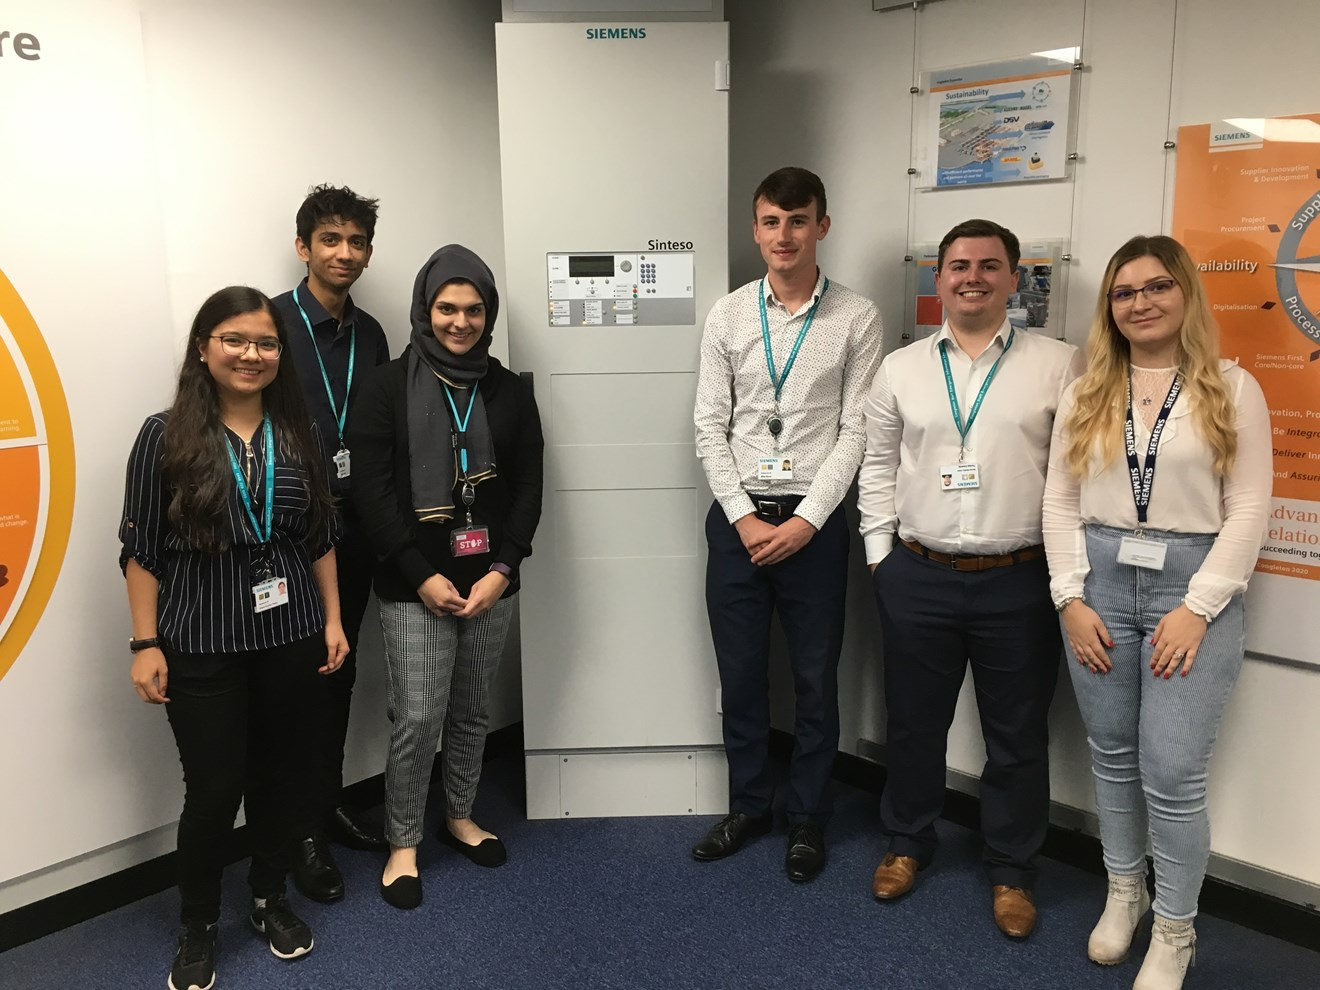 Siemens launches Digital Academy to nurture next generation of engineering and tech talent: IMG 3376